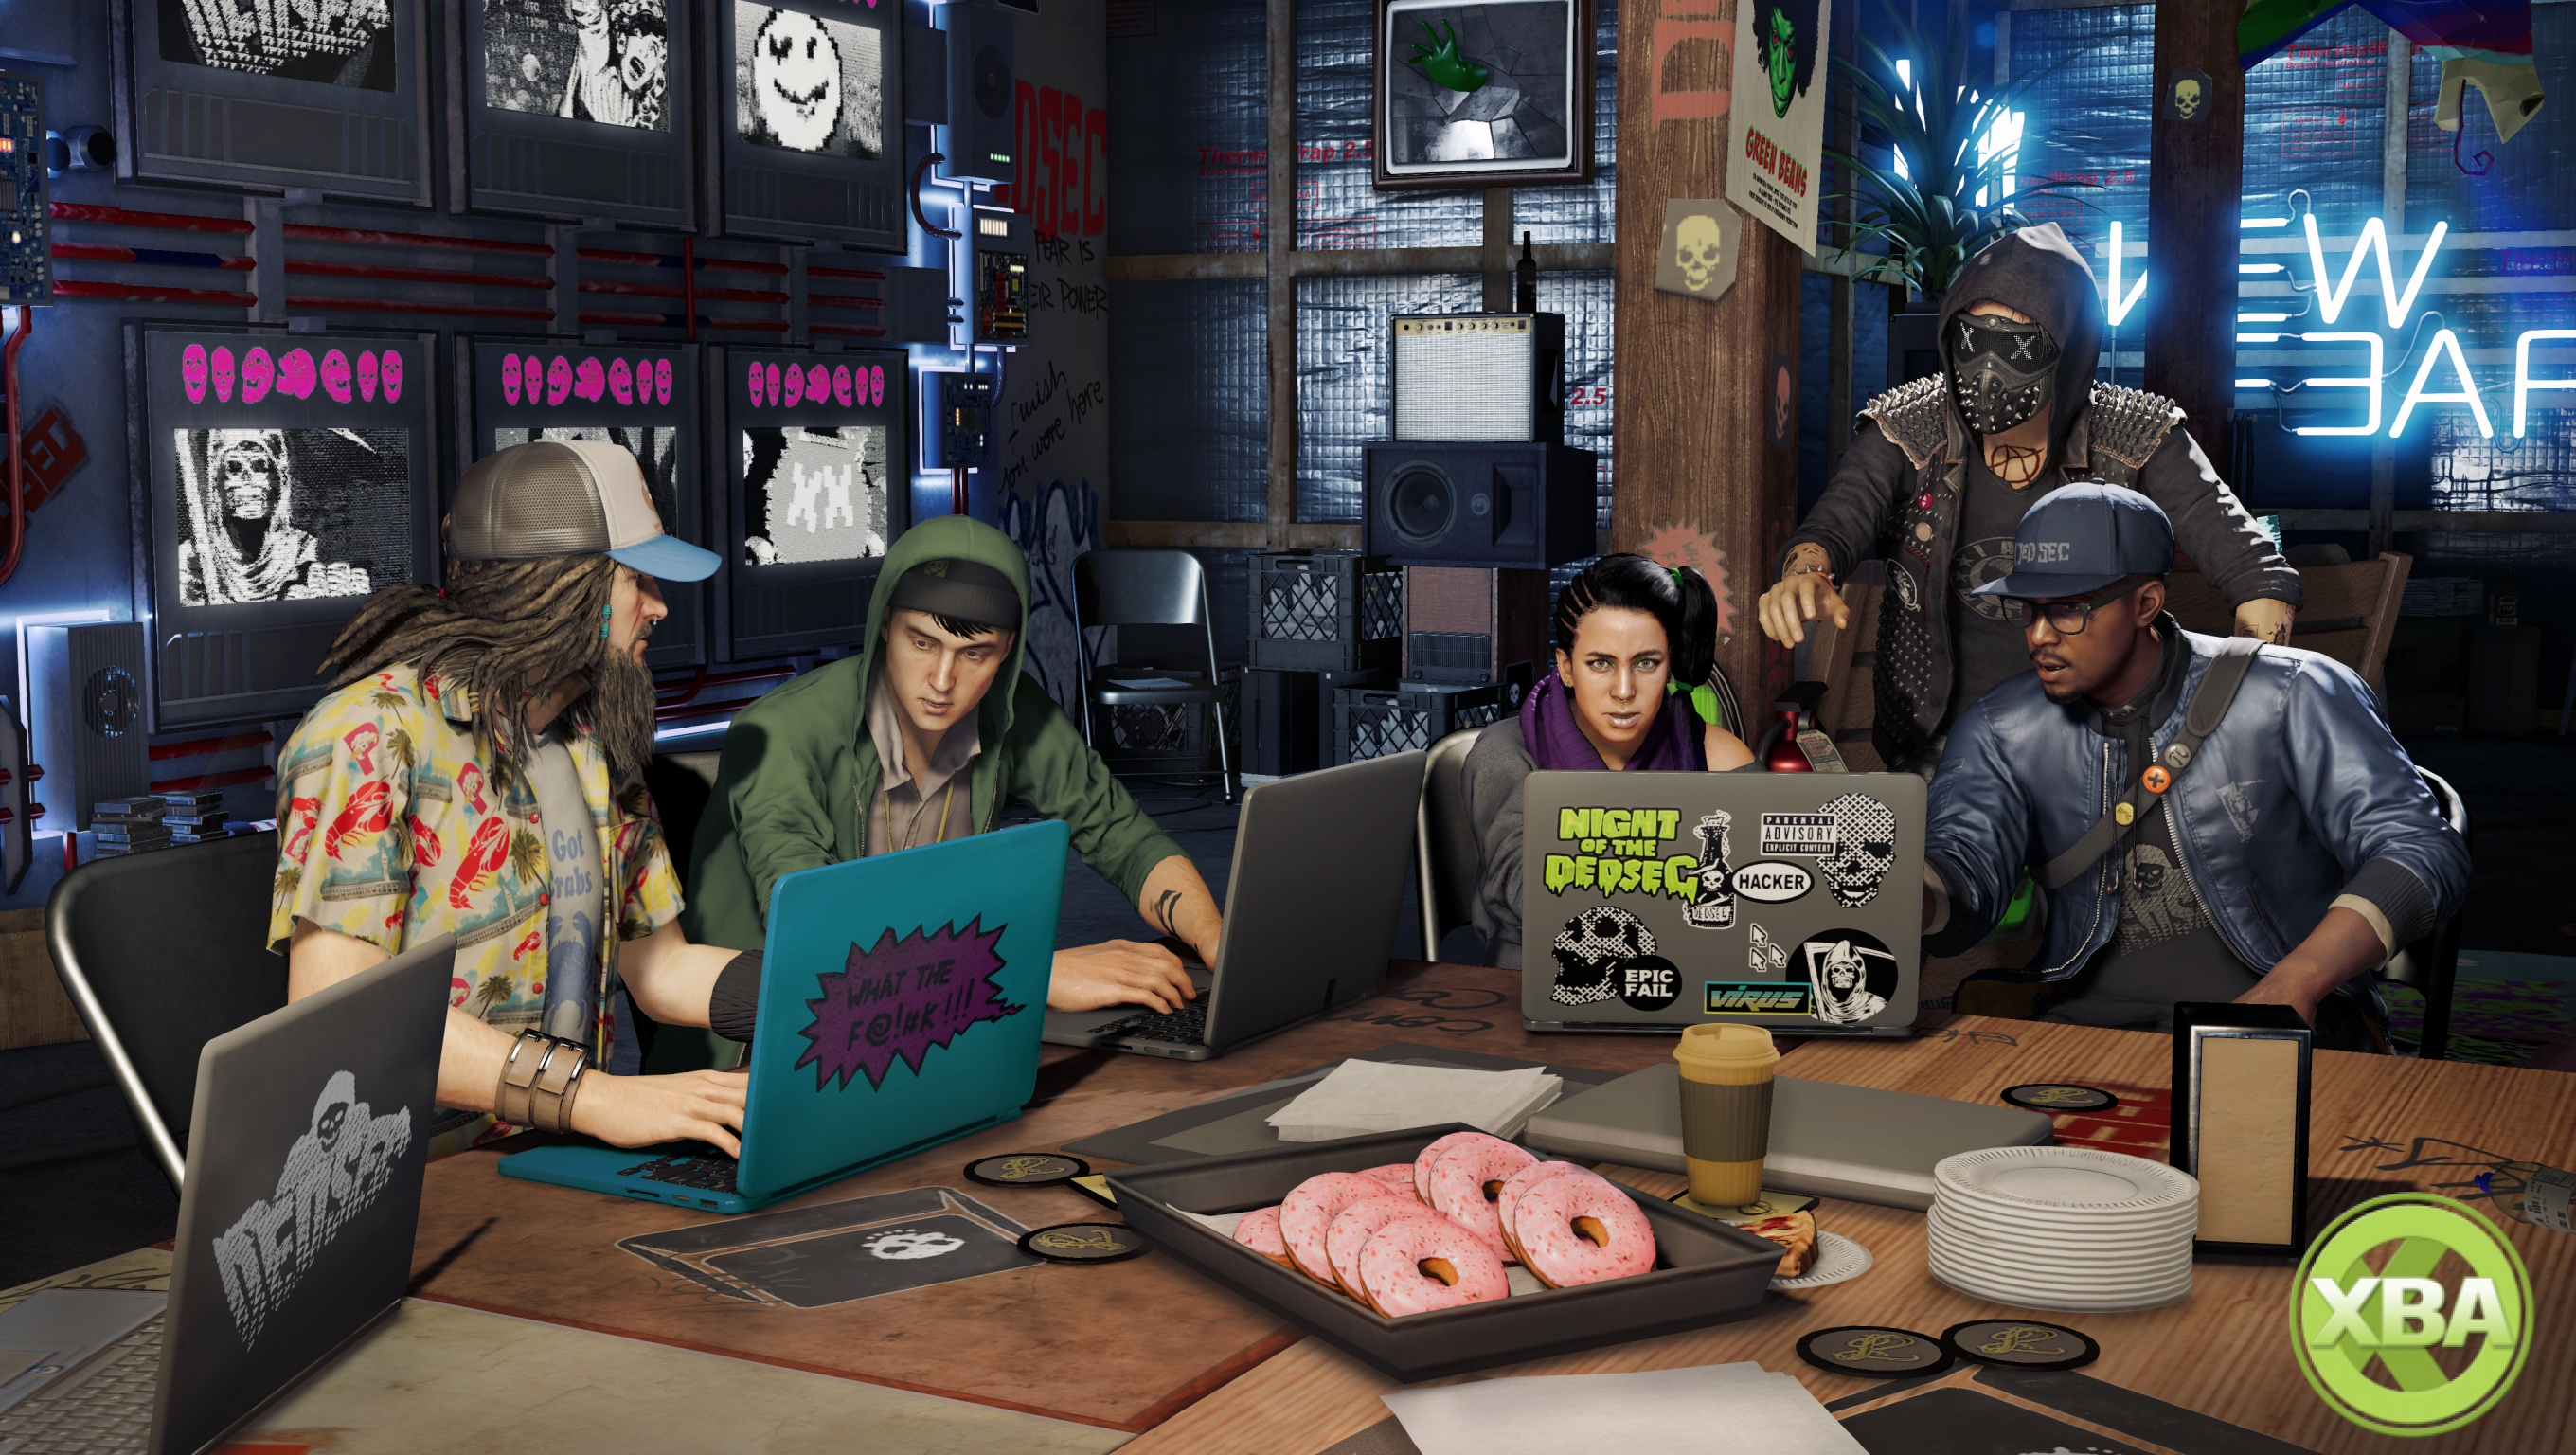 New Watch_Dogs game is called Watch Dogs Legion, first details leaked online